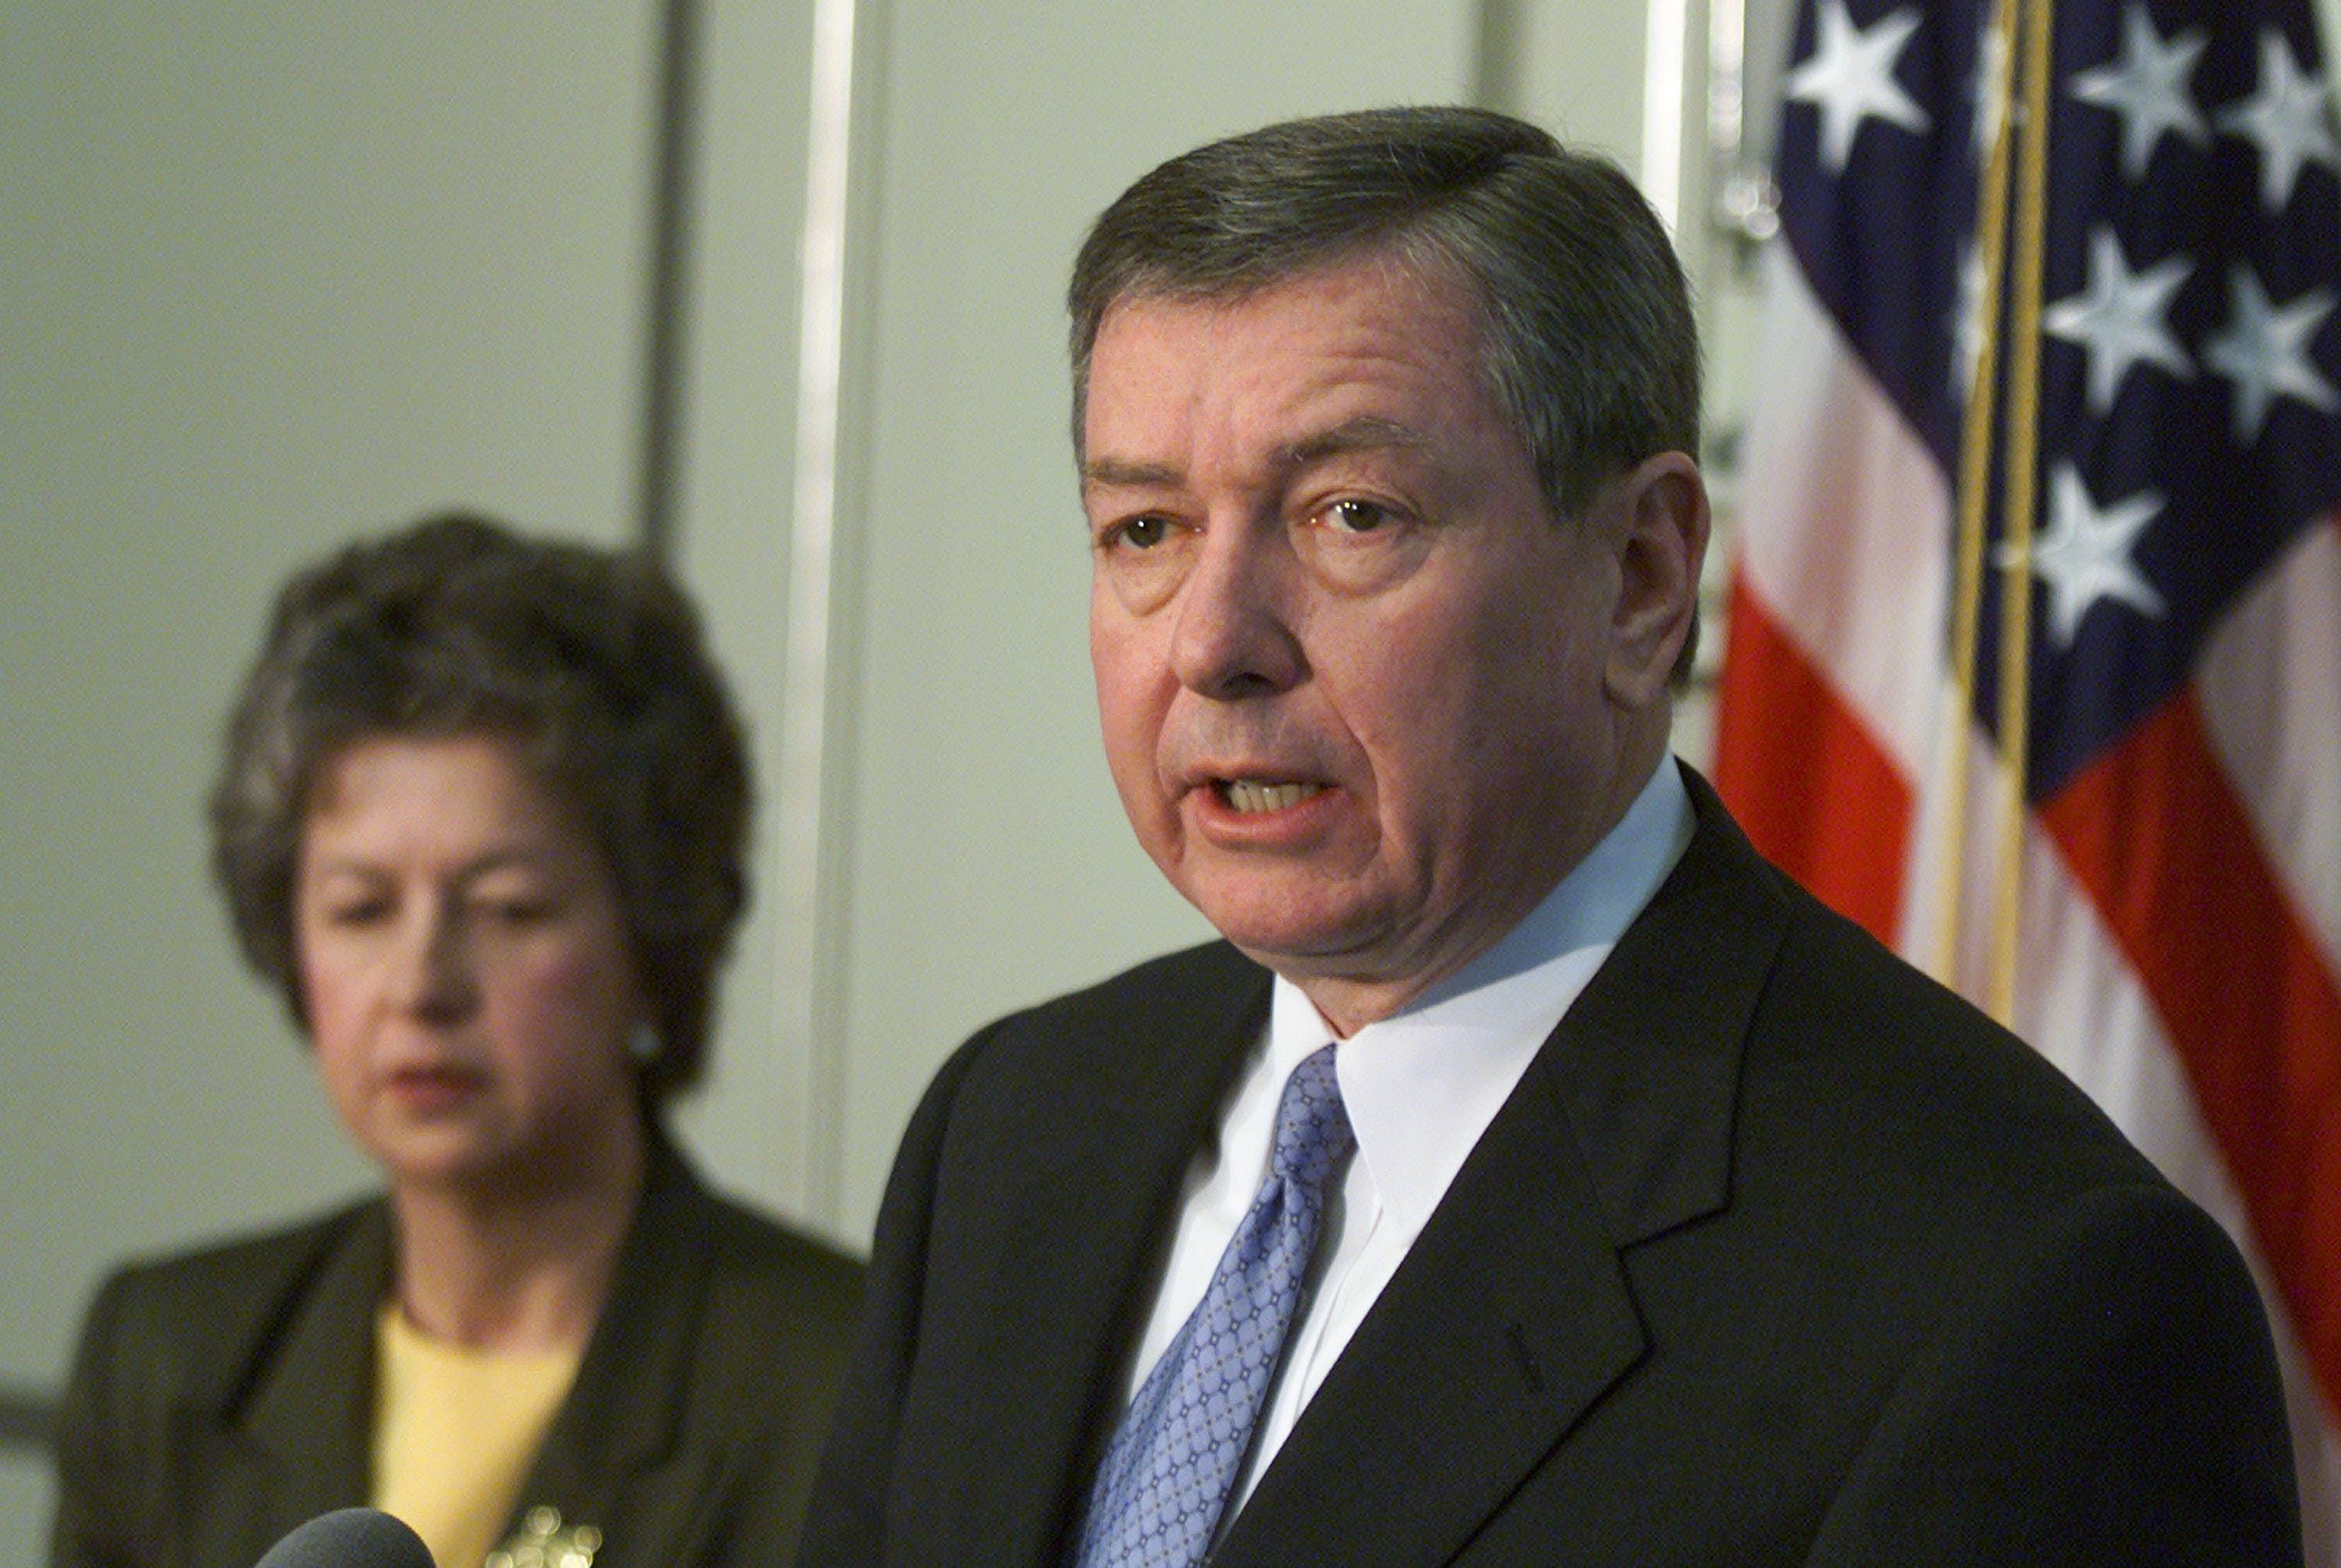 387784 01: Attorney General John Ashcroft, right, speaks about the execution of Timothy McVeigh, as the Federal Bureau of Prisons Director Kathleen Hawk Sawyer looks on, April 12, 2001 at the Justice Department in Washington, DC. Ashcroft announced that the execution will be made available to view on a closed circuit television for victims and relatives of the Oklahoma City bombing. (Photo by Mark Wilson/Newsmakers)